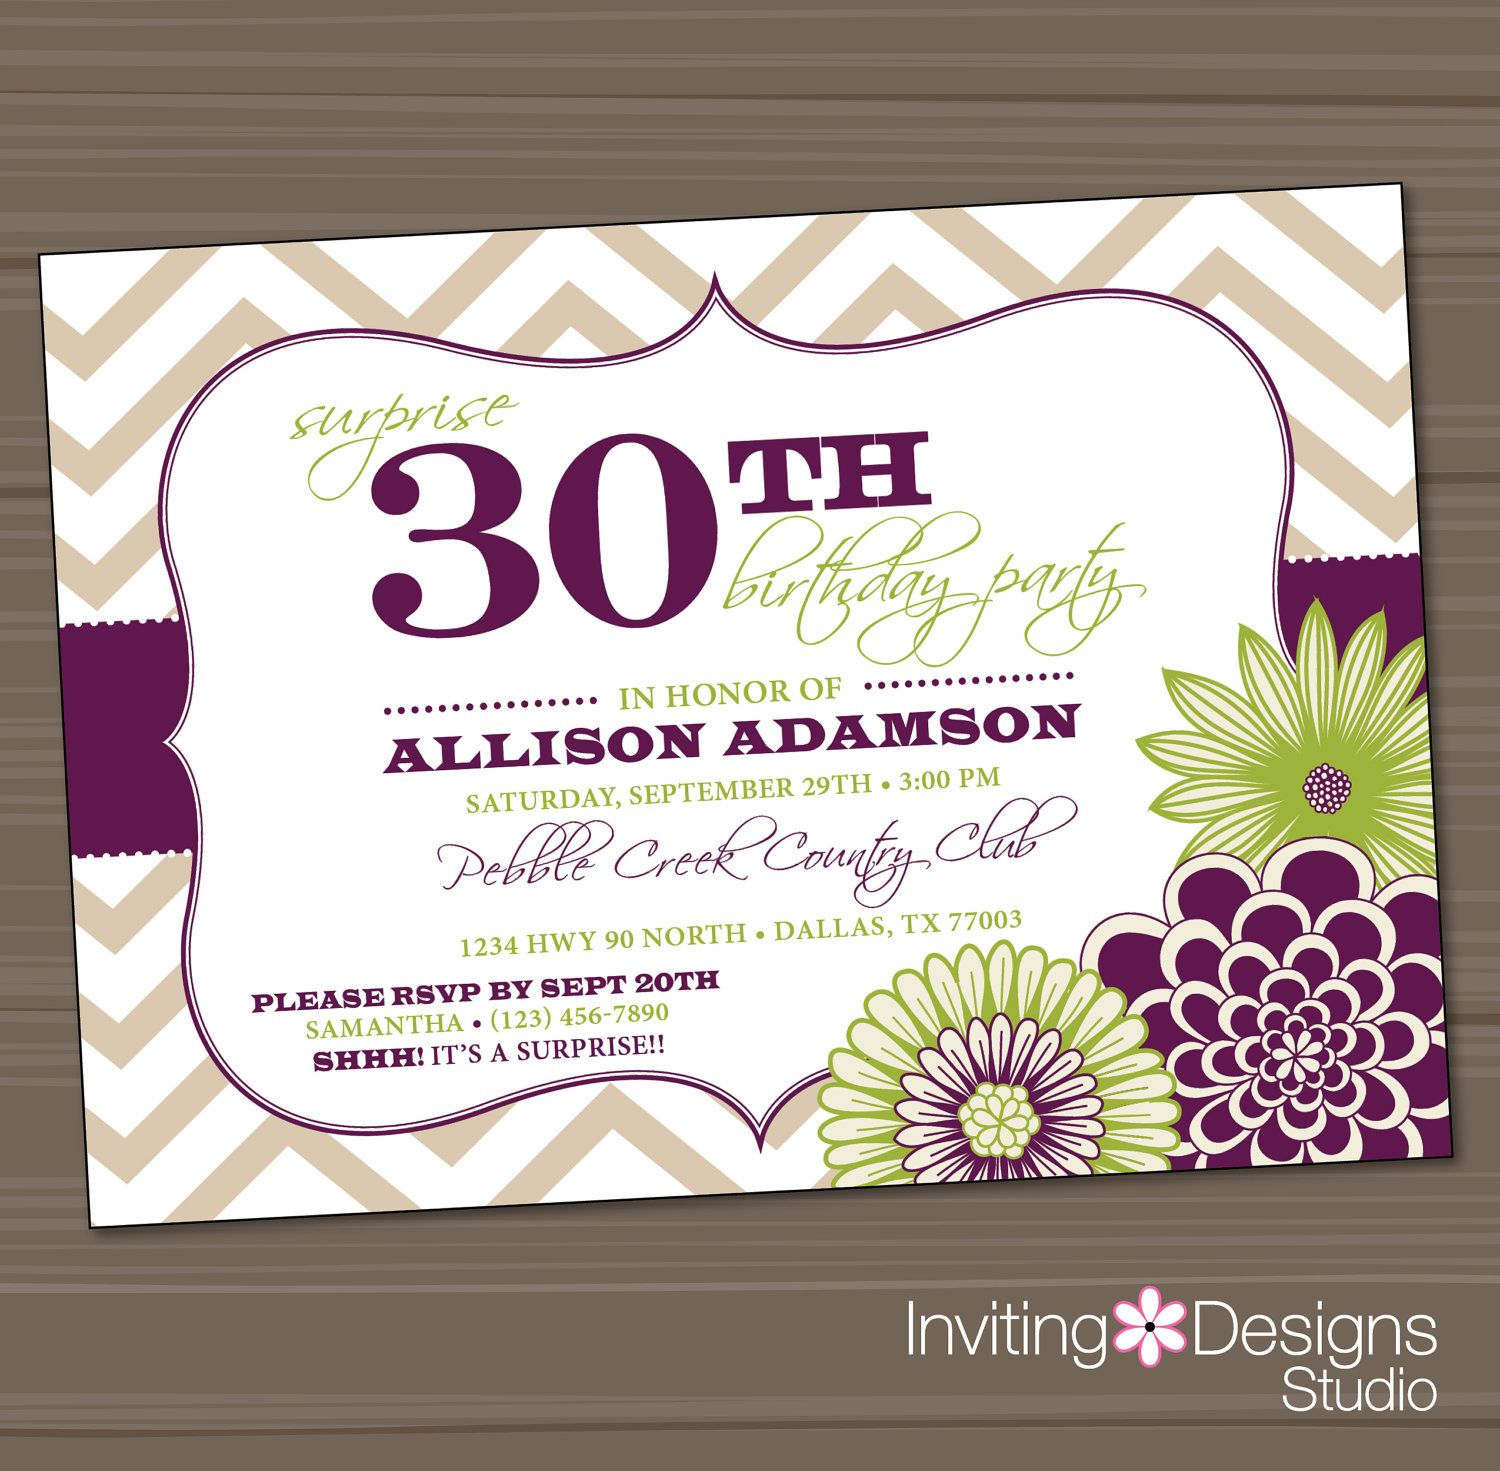 surprise birthday invitations templates for adults - Google Search ...